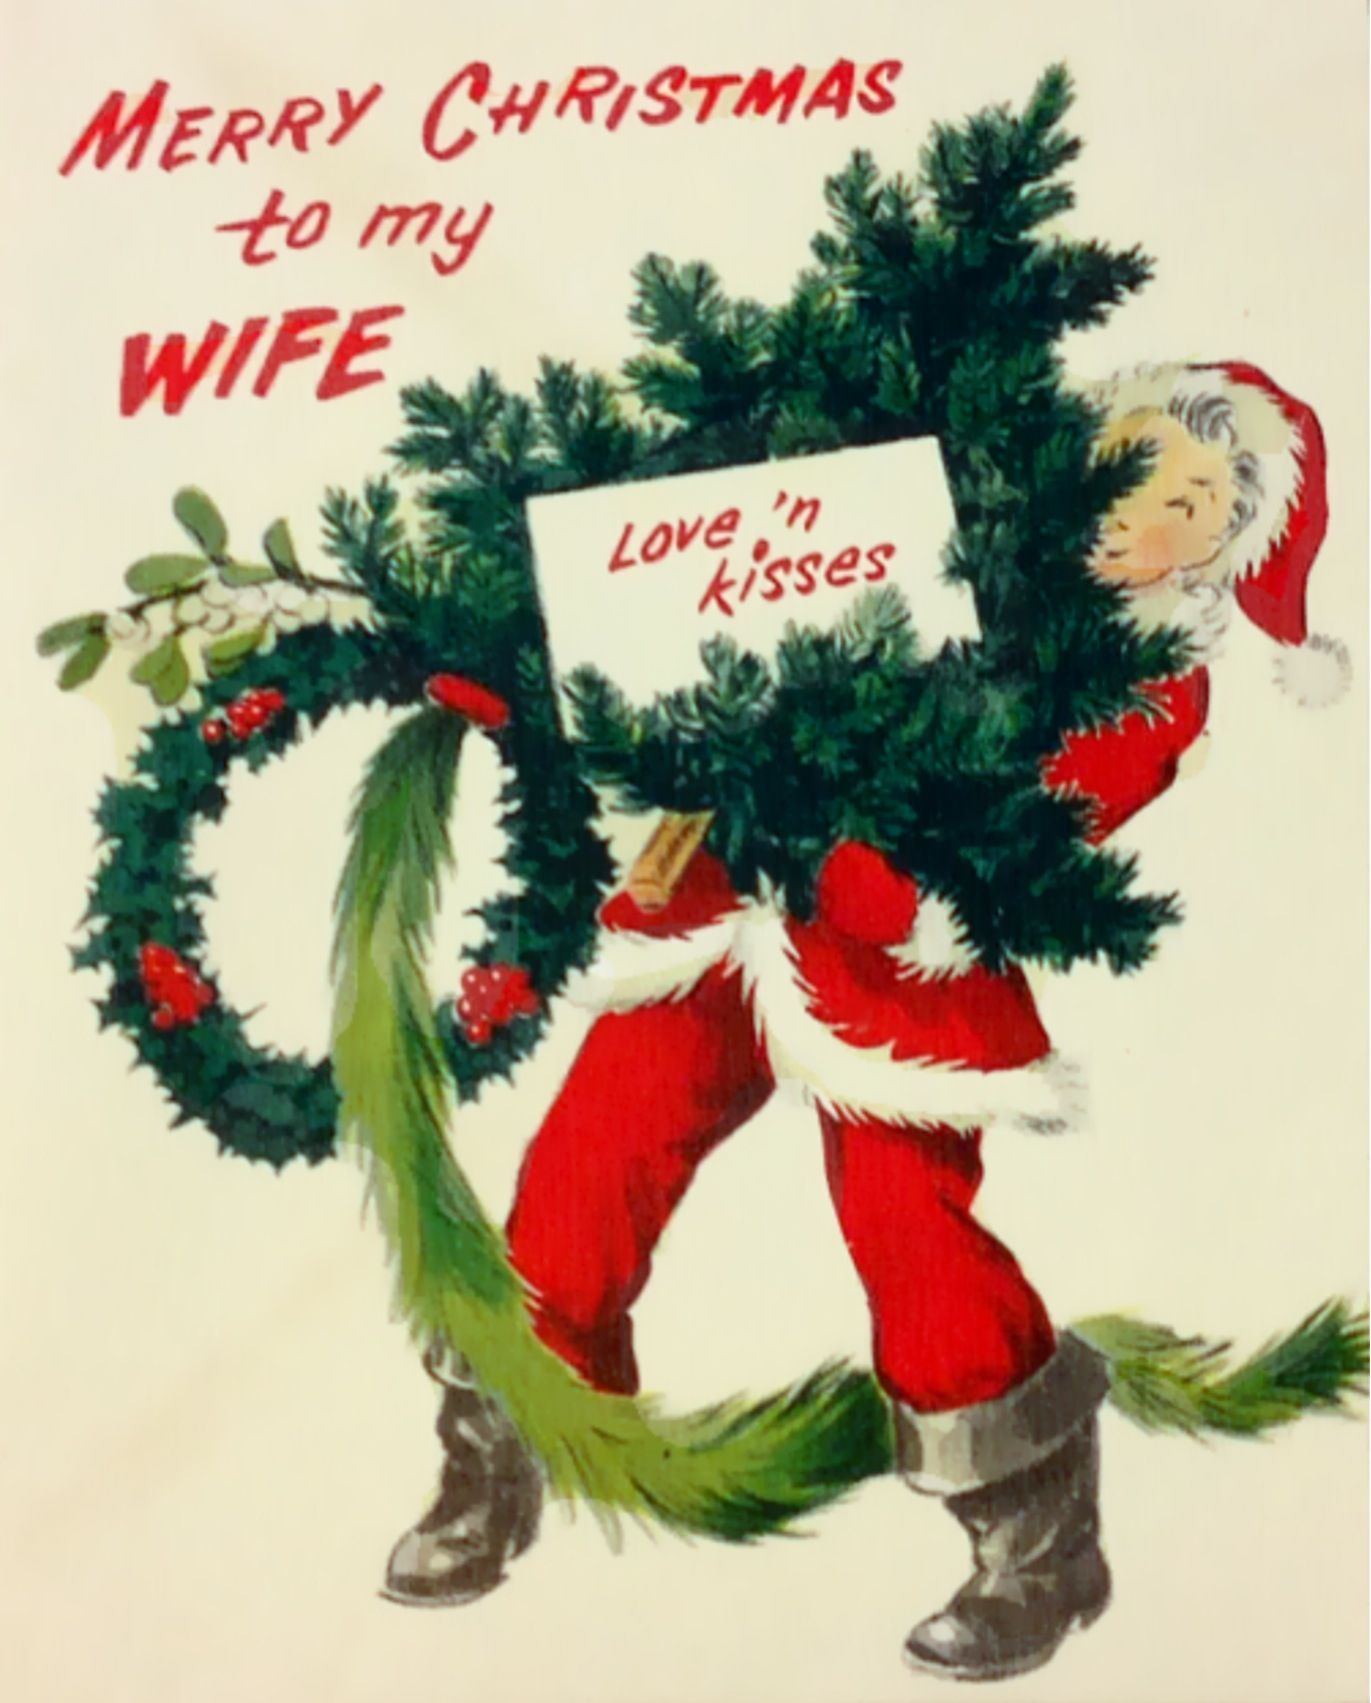 Vintage 1940s Pop Up Merry Christmas Card For Wife By Norcross